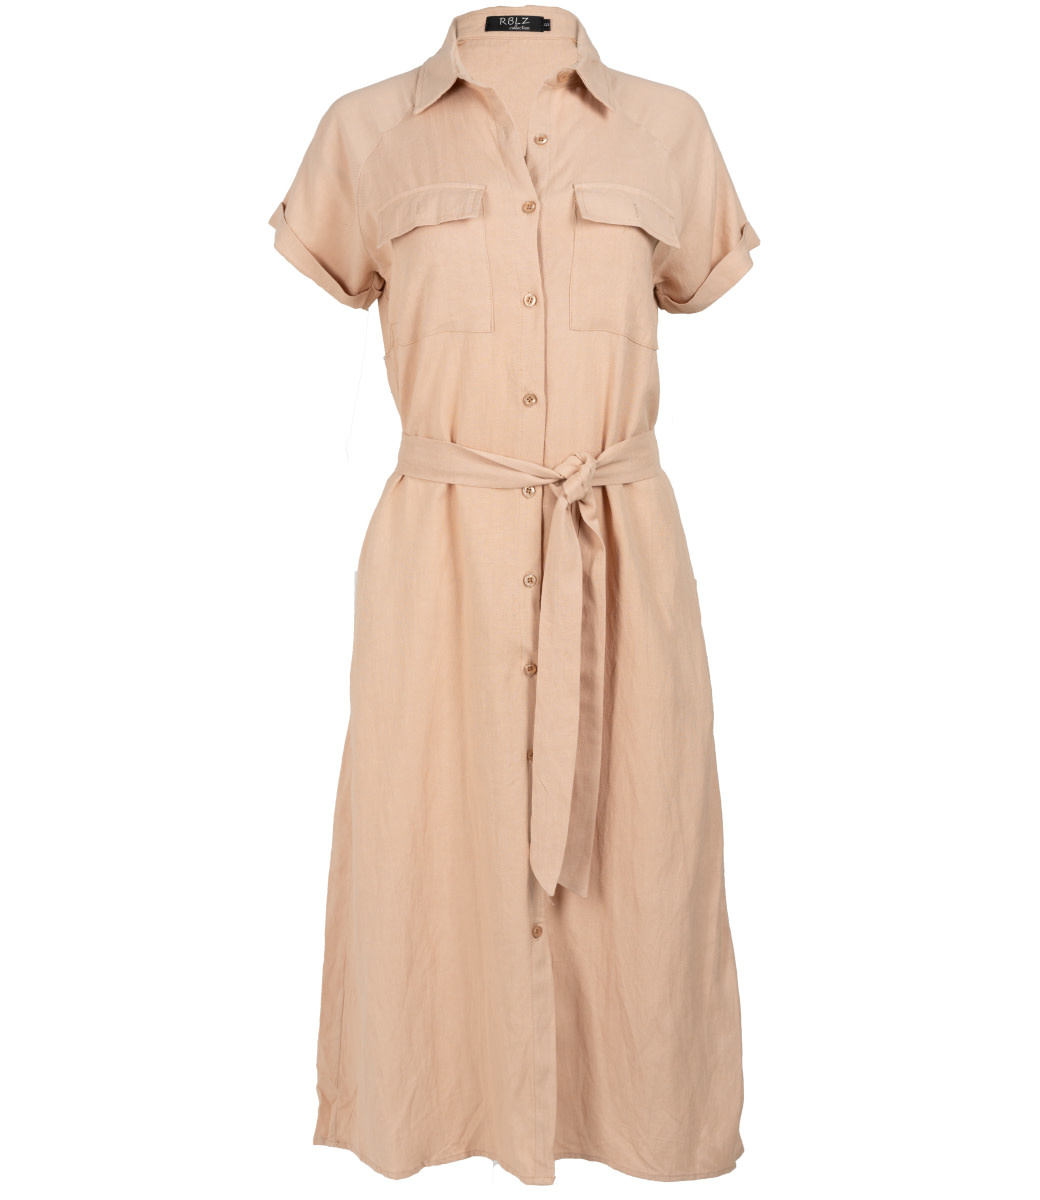 Rebelz Collection Jurk linnen maxi beige